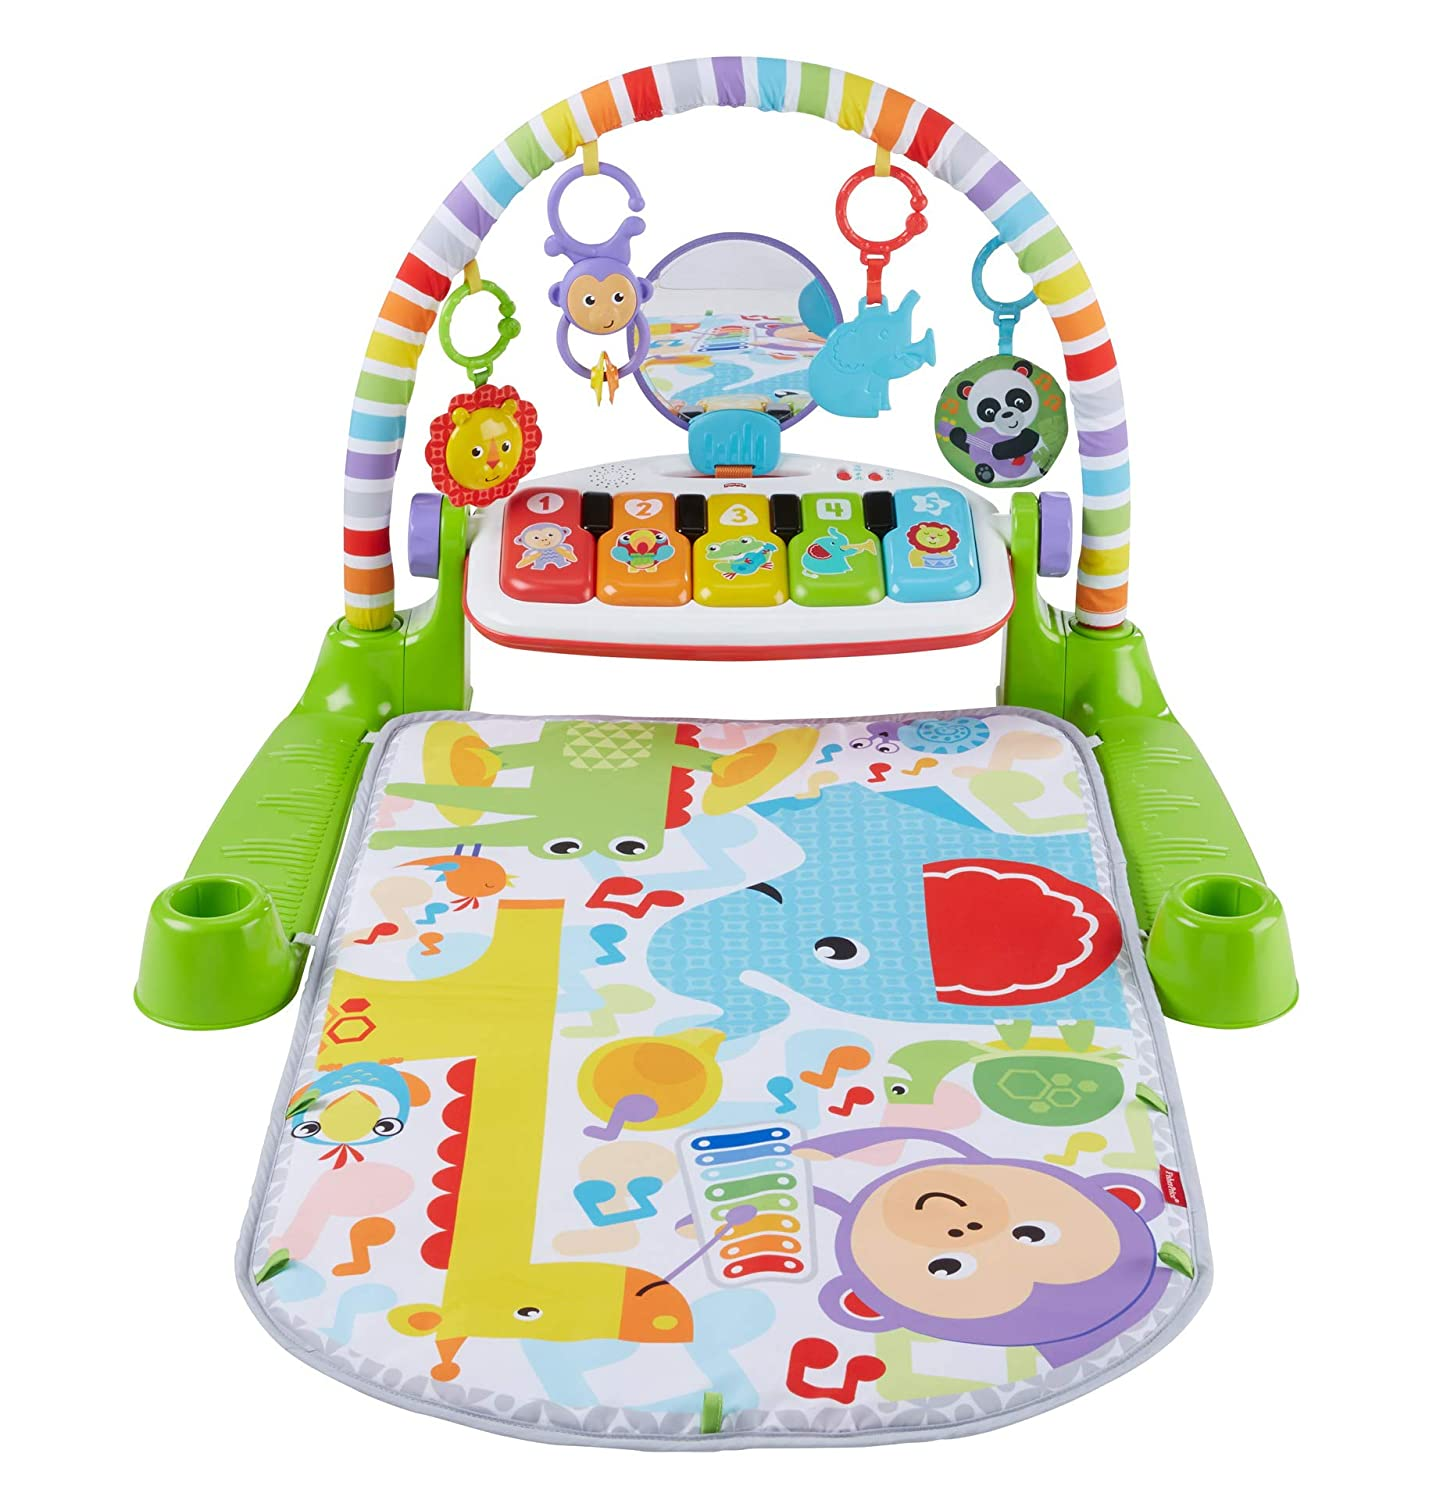 Fisher-Price Deluxe Kick & Play Piano Gym, Green [French] GCY16